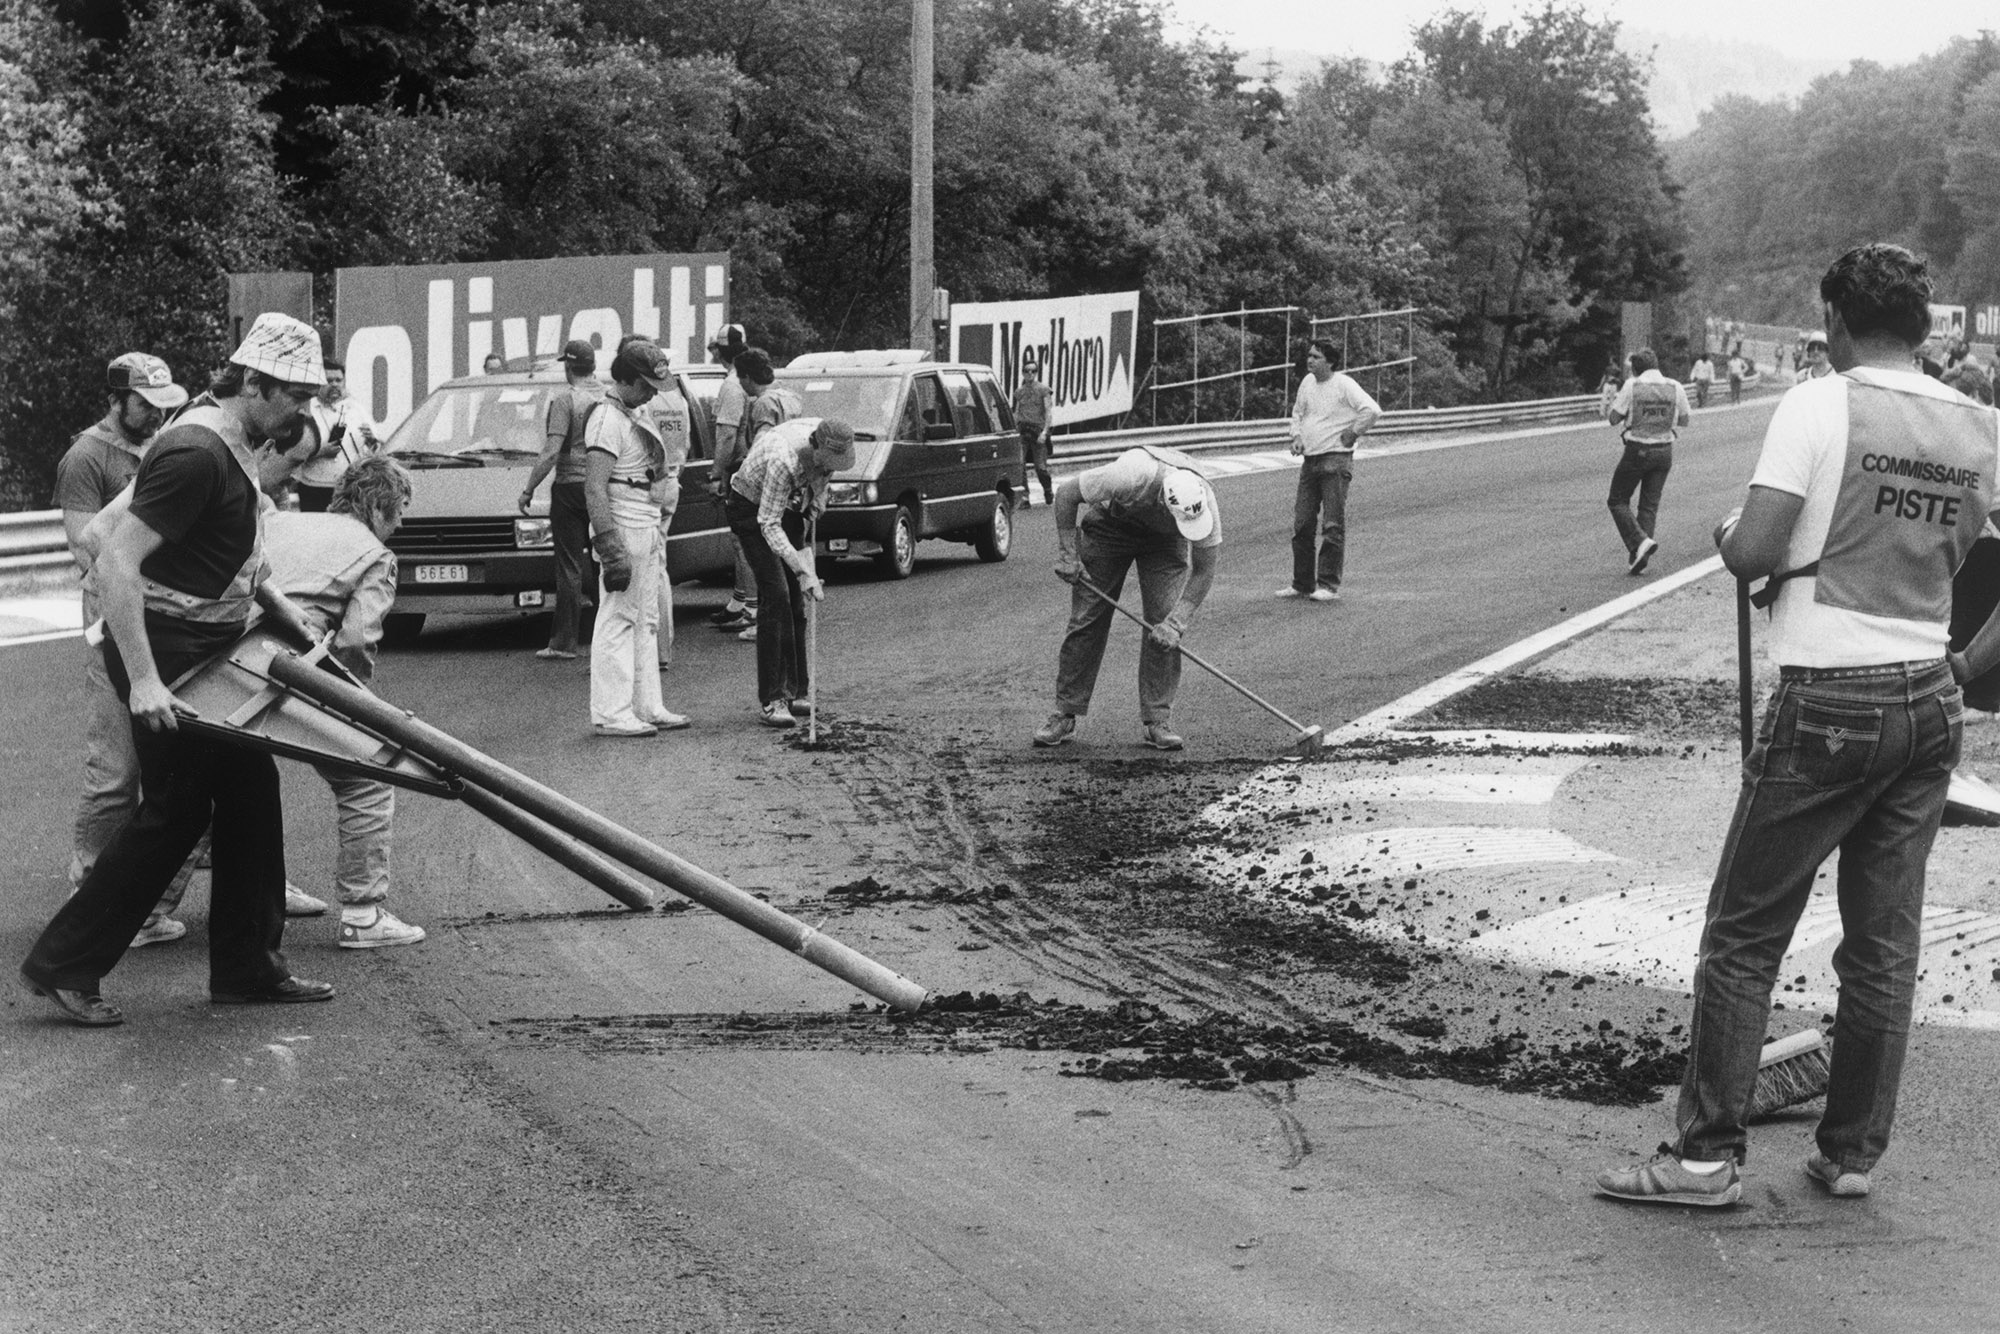 Workers try to repair the broken track surface ahead of the cancelled 1985 Belgian grand Prix